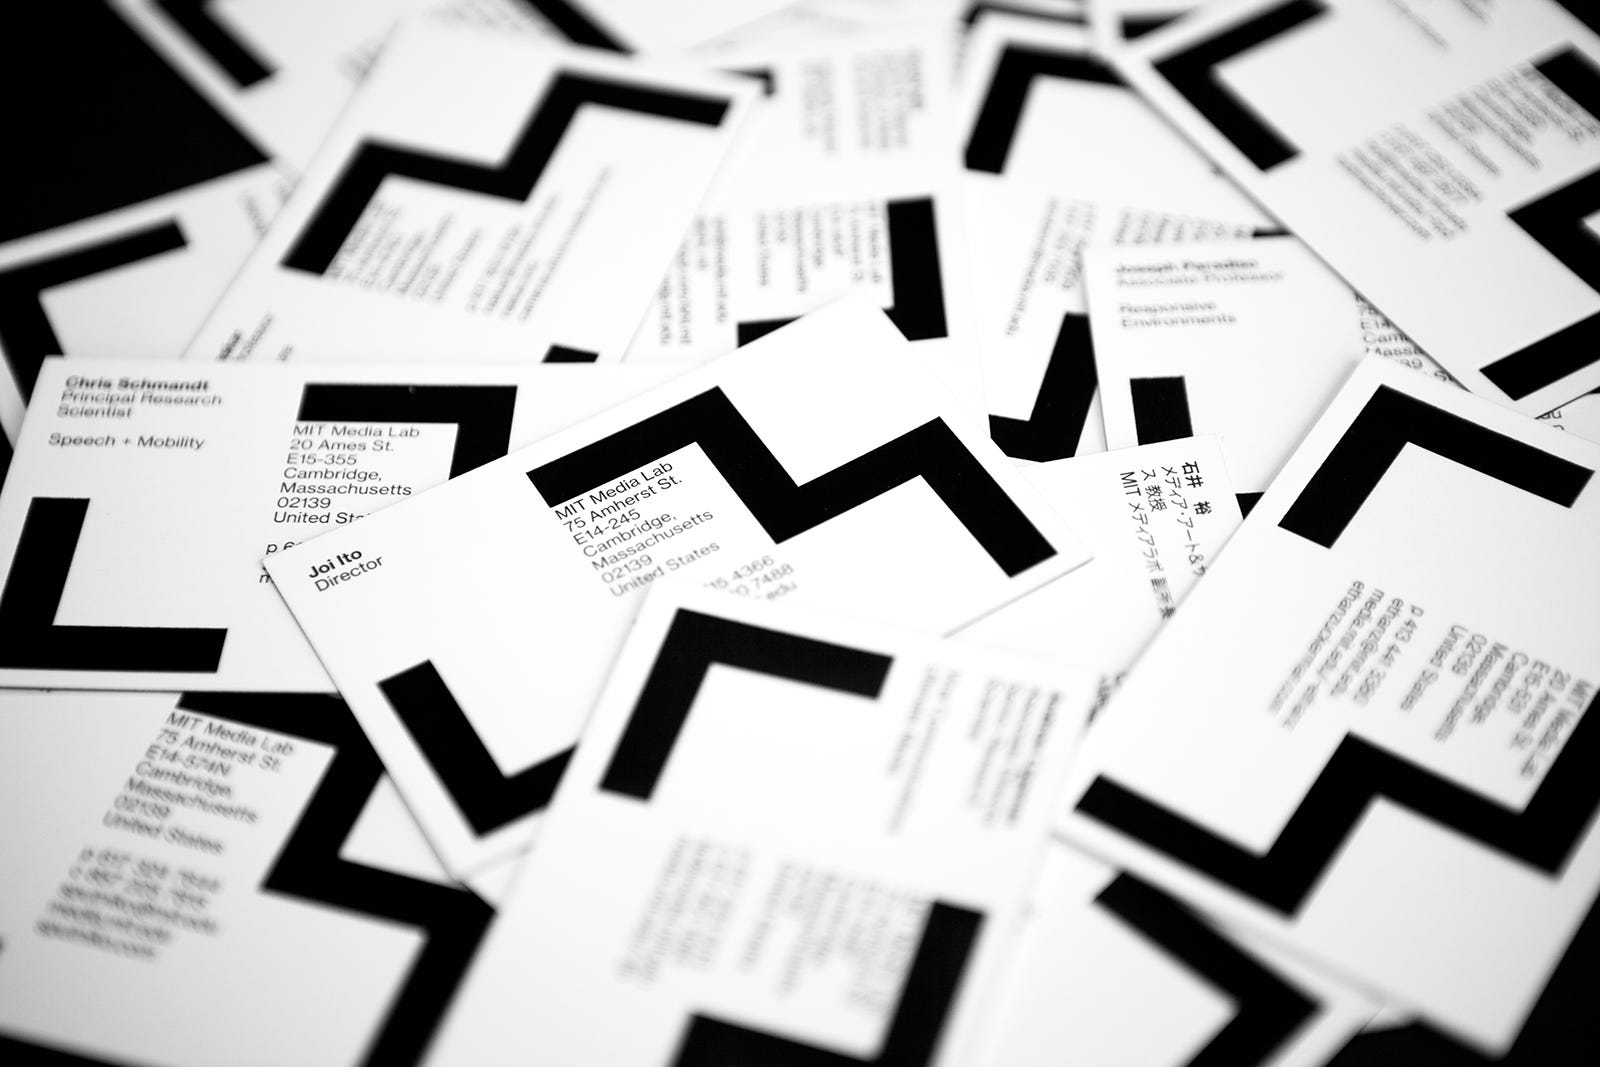 These business cards for the MIT Media Lab were part of a bigger project designed by Michael Bierut.